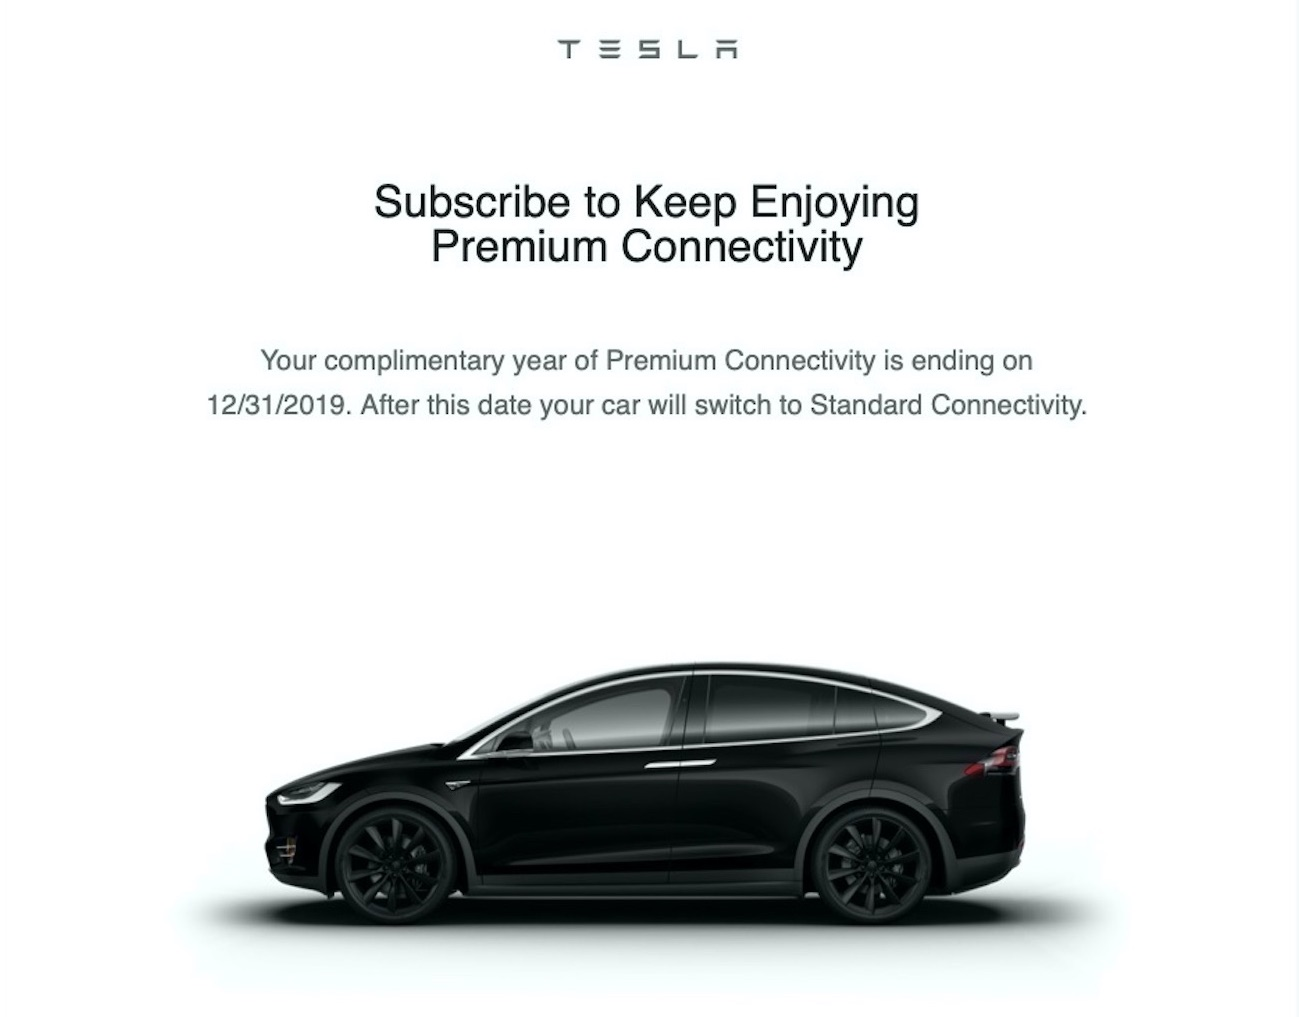 tesla-premium-connectivity-email